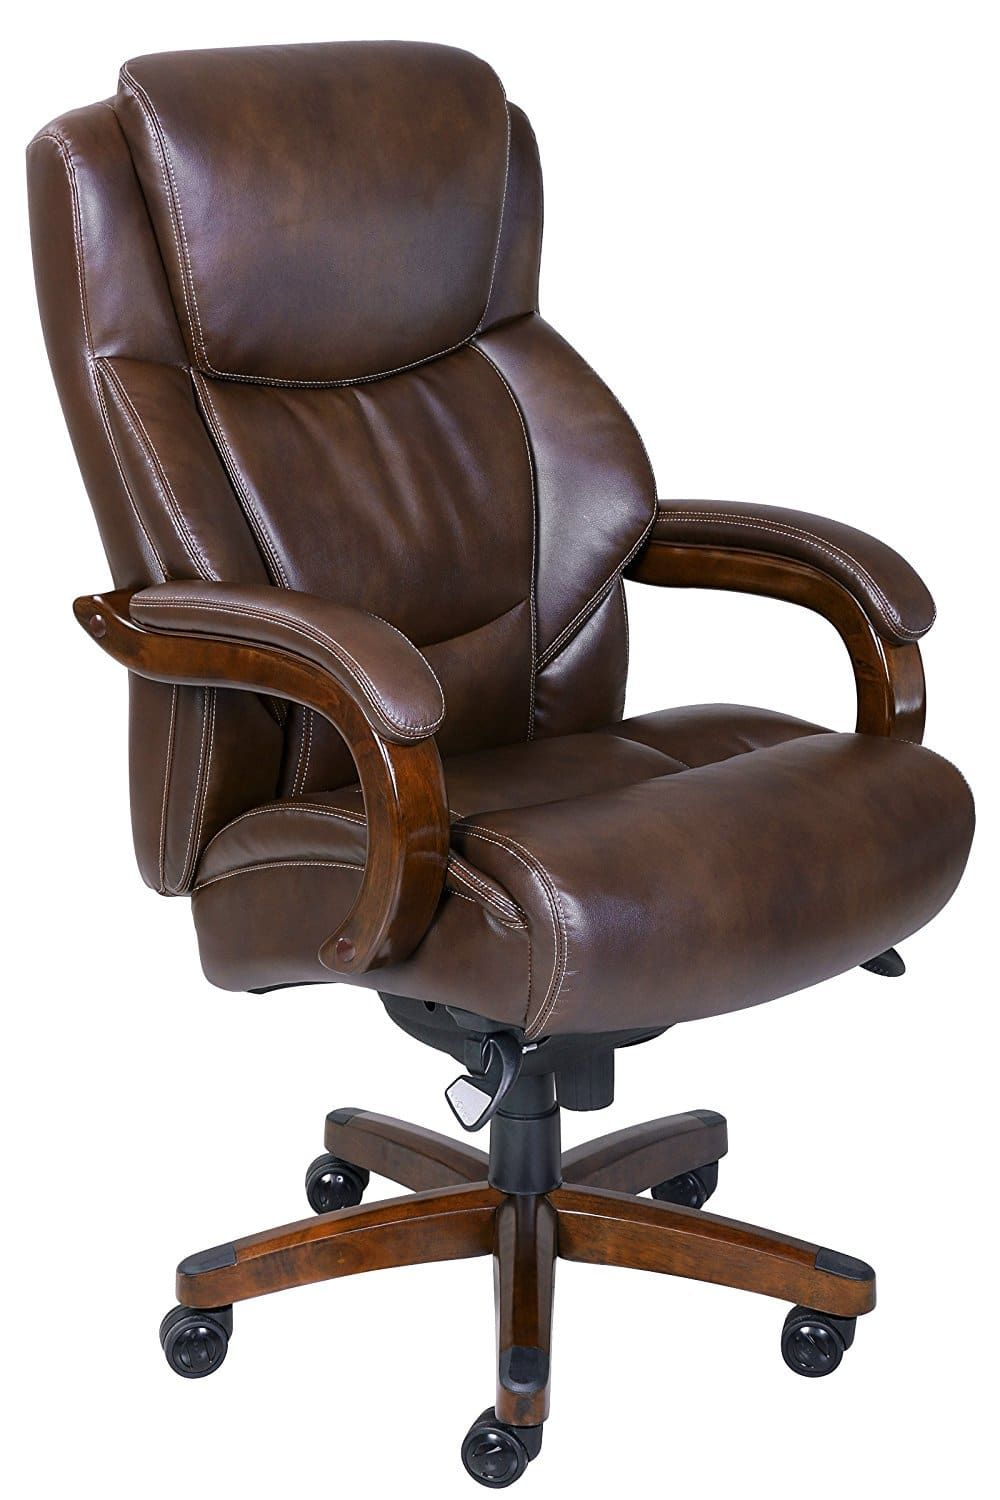 Top 10 Best Executive Chairs In 2020 Review Purchasing Guide Best Office Chairs Leather Office Chair Best Office Chair Office Chair Design